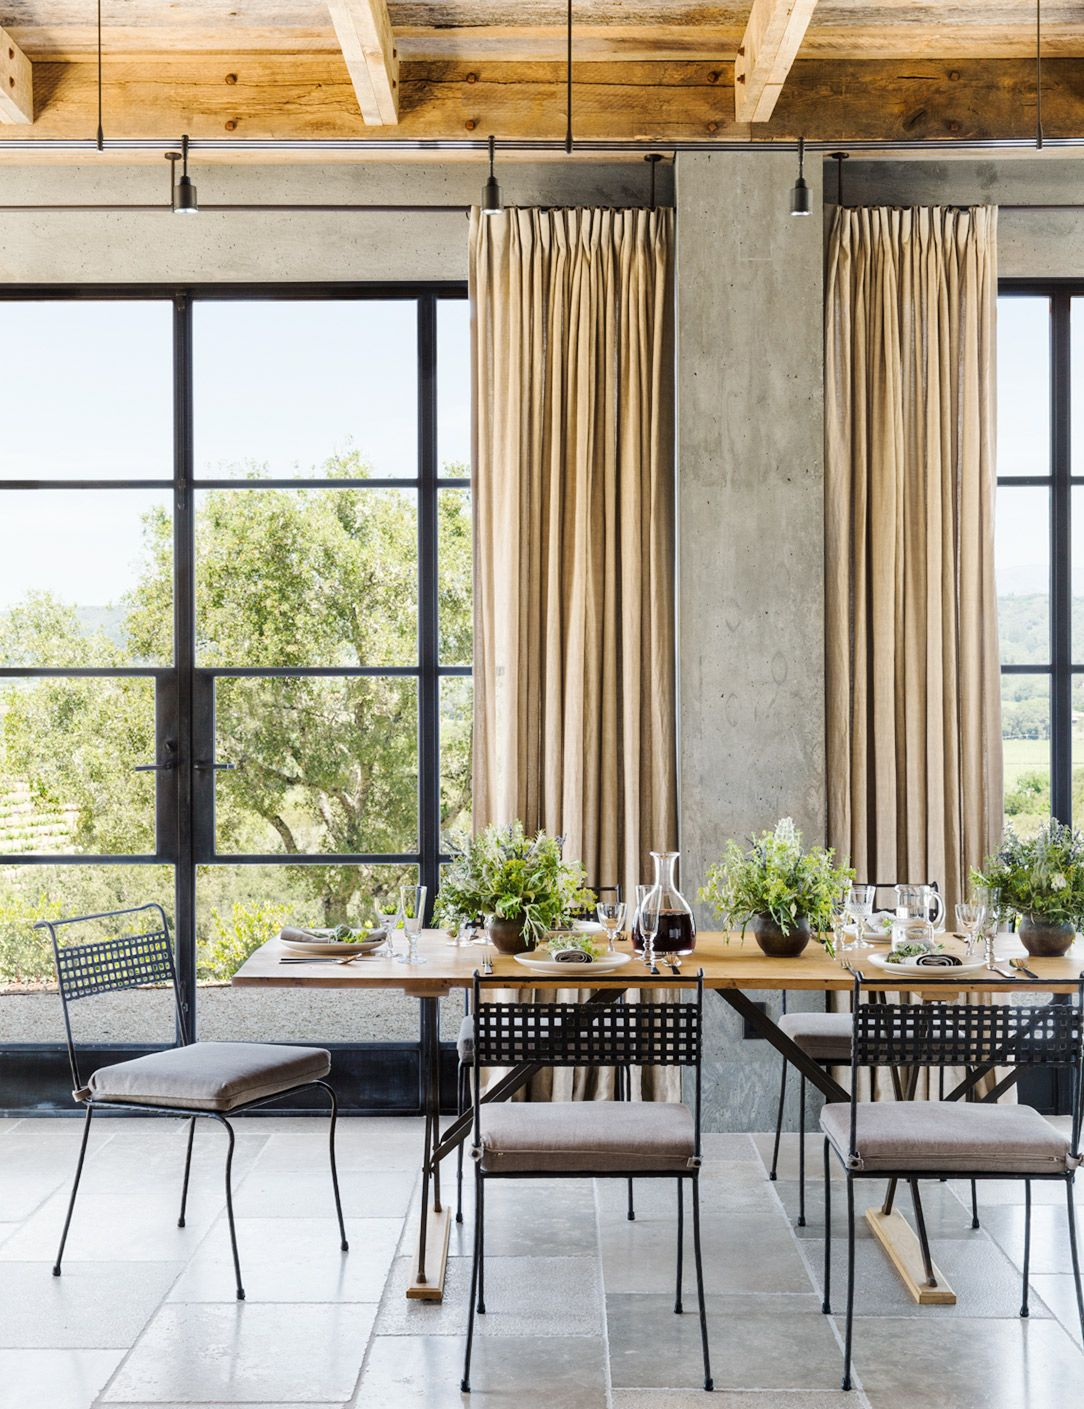 Tan curtains, wood dining table, grey tile flooring, and black chairs with grey seat cushions